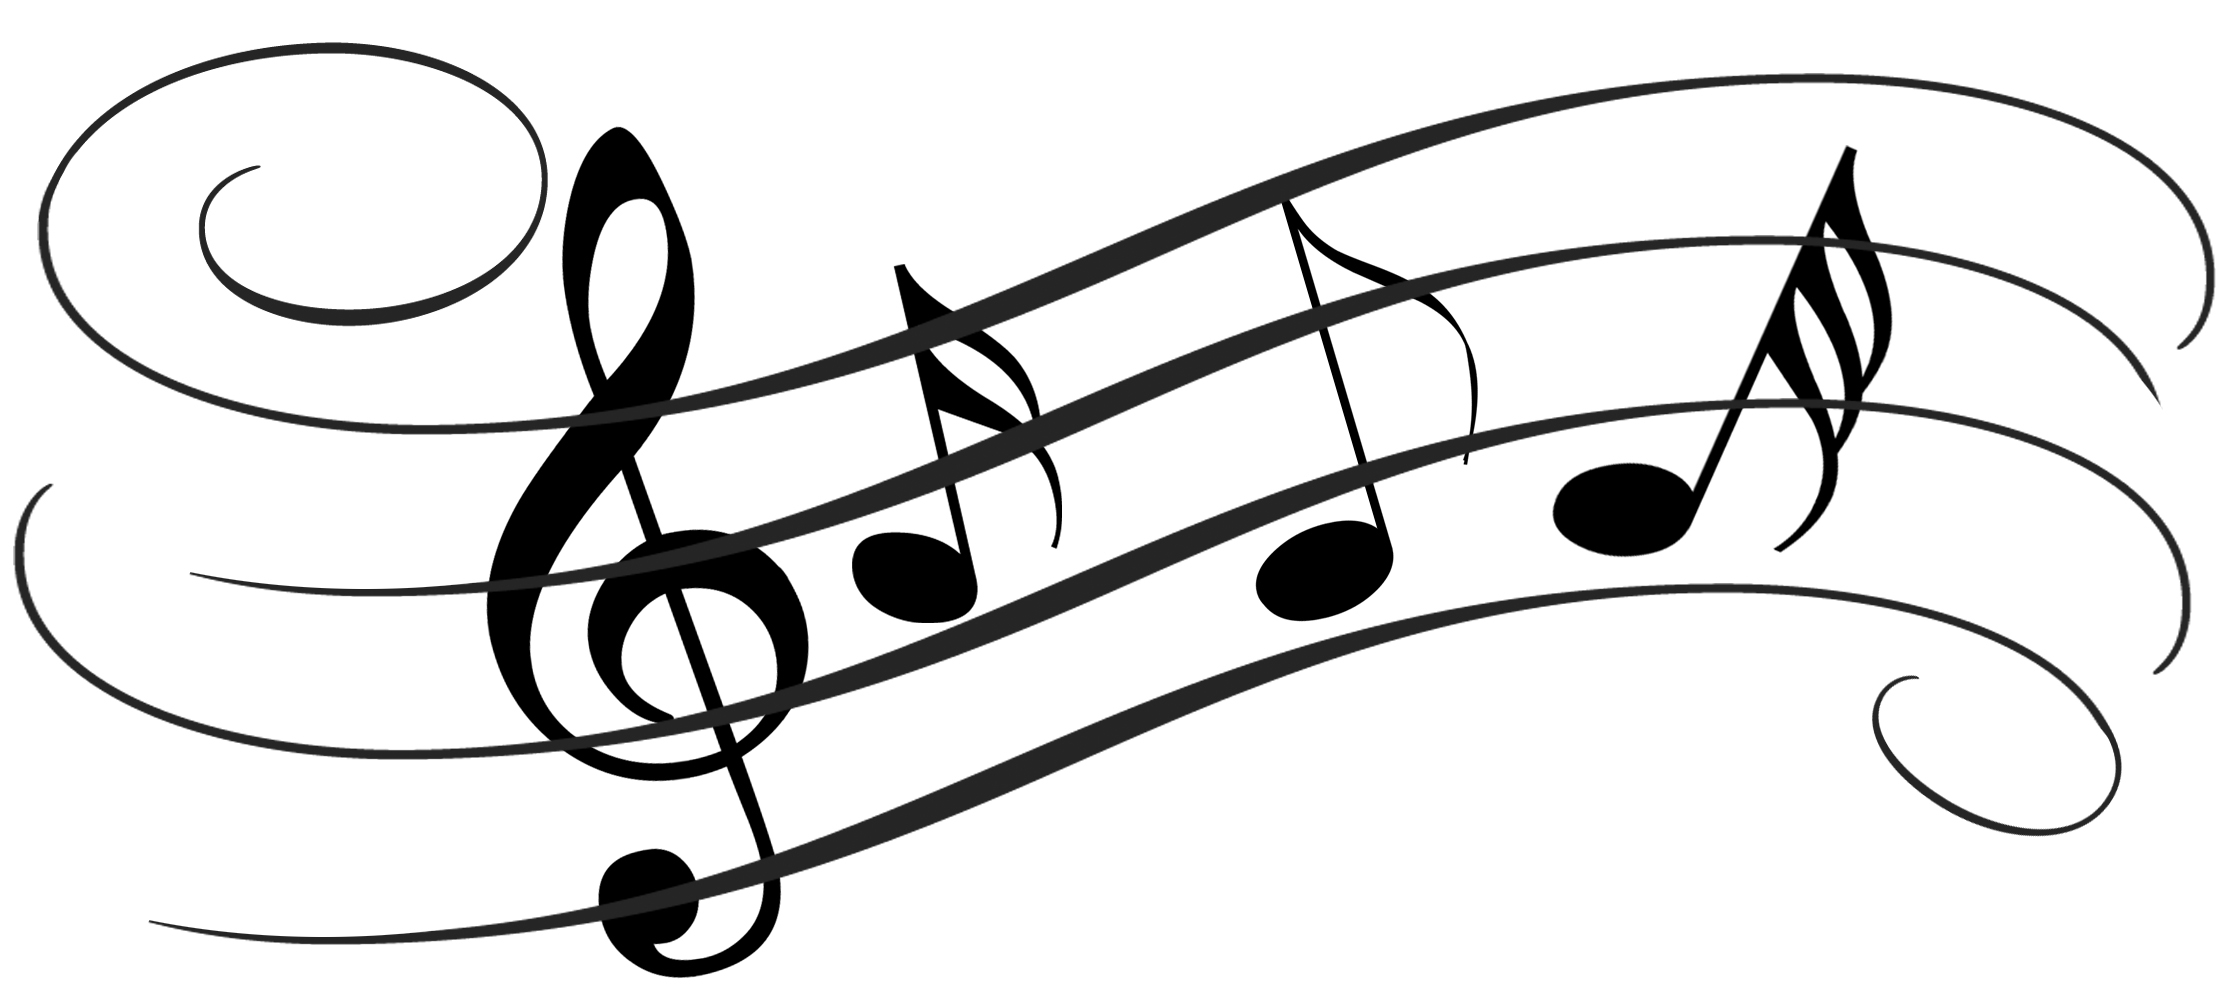 Music notes  black and white musical instruments black and white christmas clipart